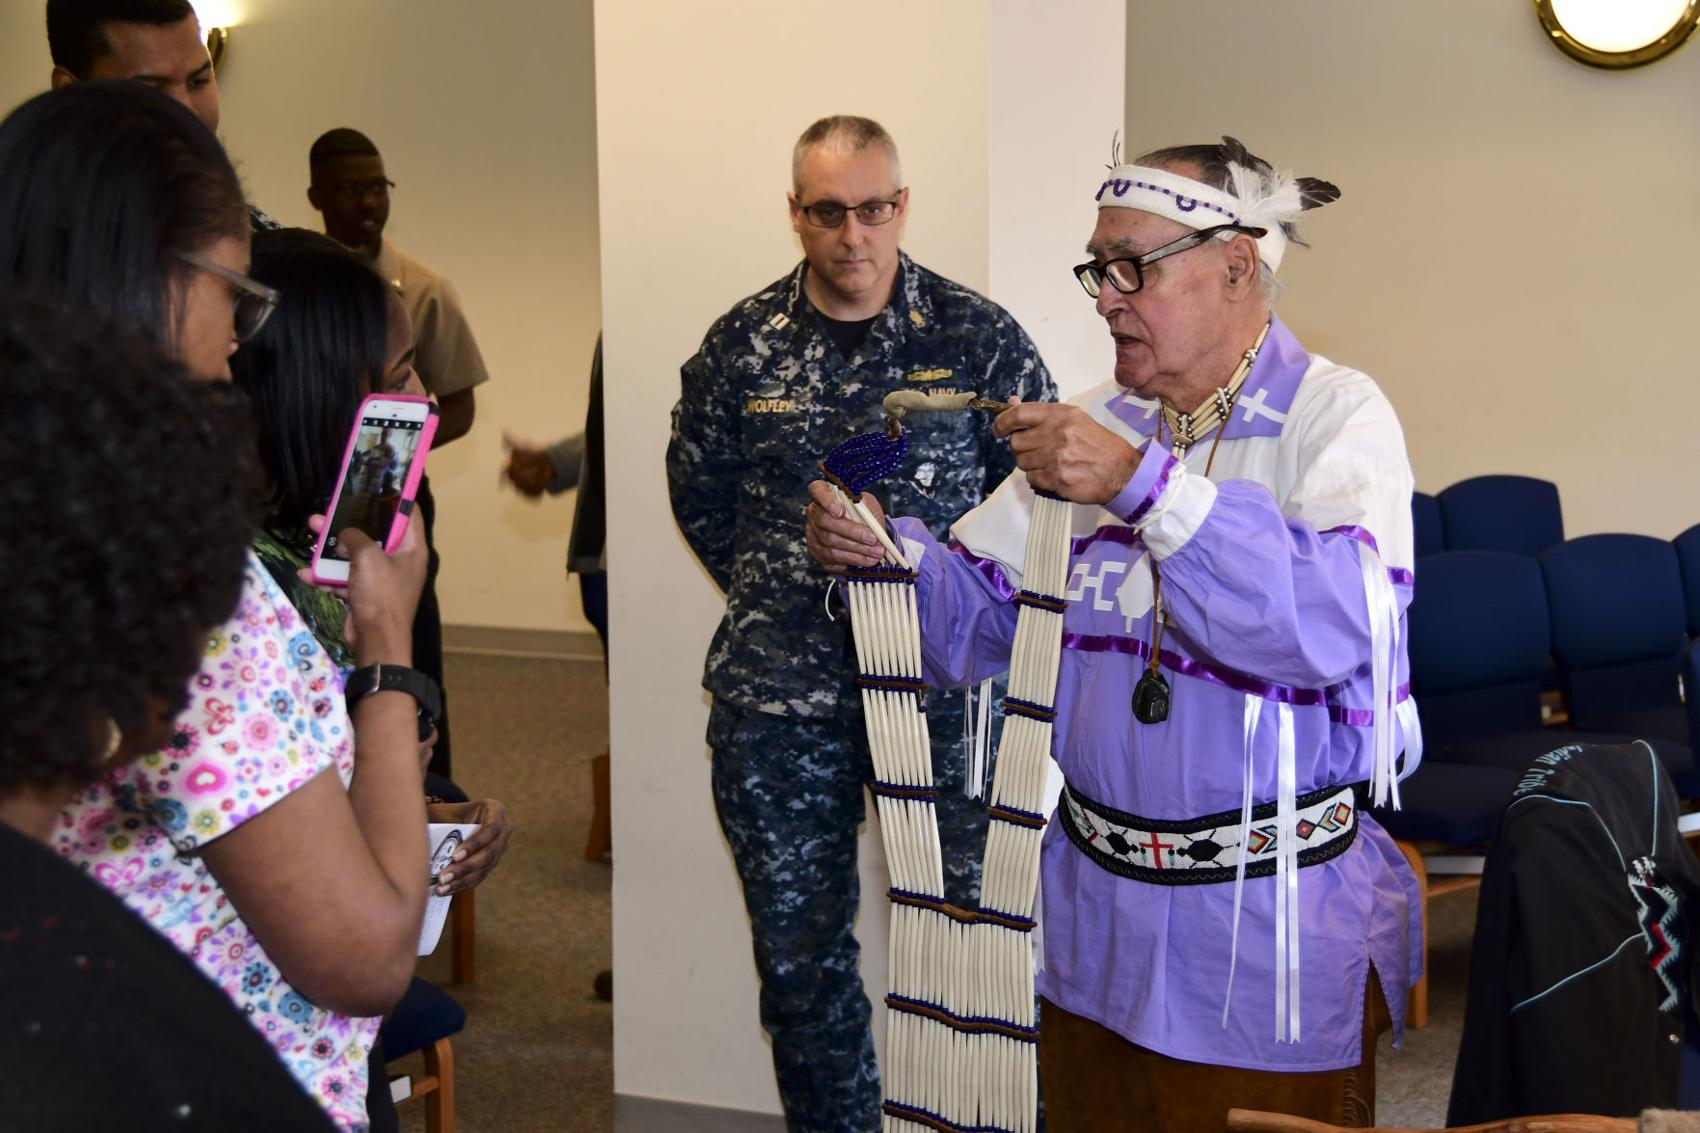 Pastor William M. Reid, a member of the Meherrin Indian tribe of North Carolina, presents handmade Native American wardrobe items during Naval Medical Center Portsmouth's (NMCP) Native American Heritage Month celebration. Petty Officer 2nd Class Kris Lindstrom